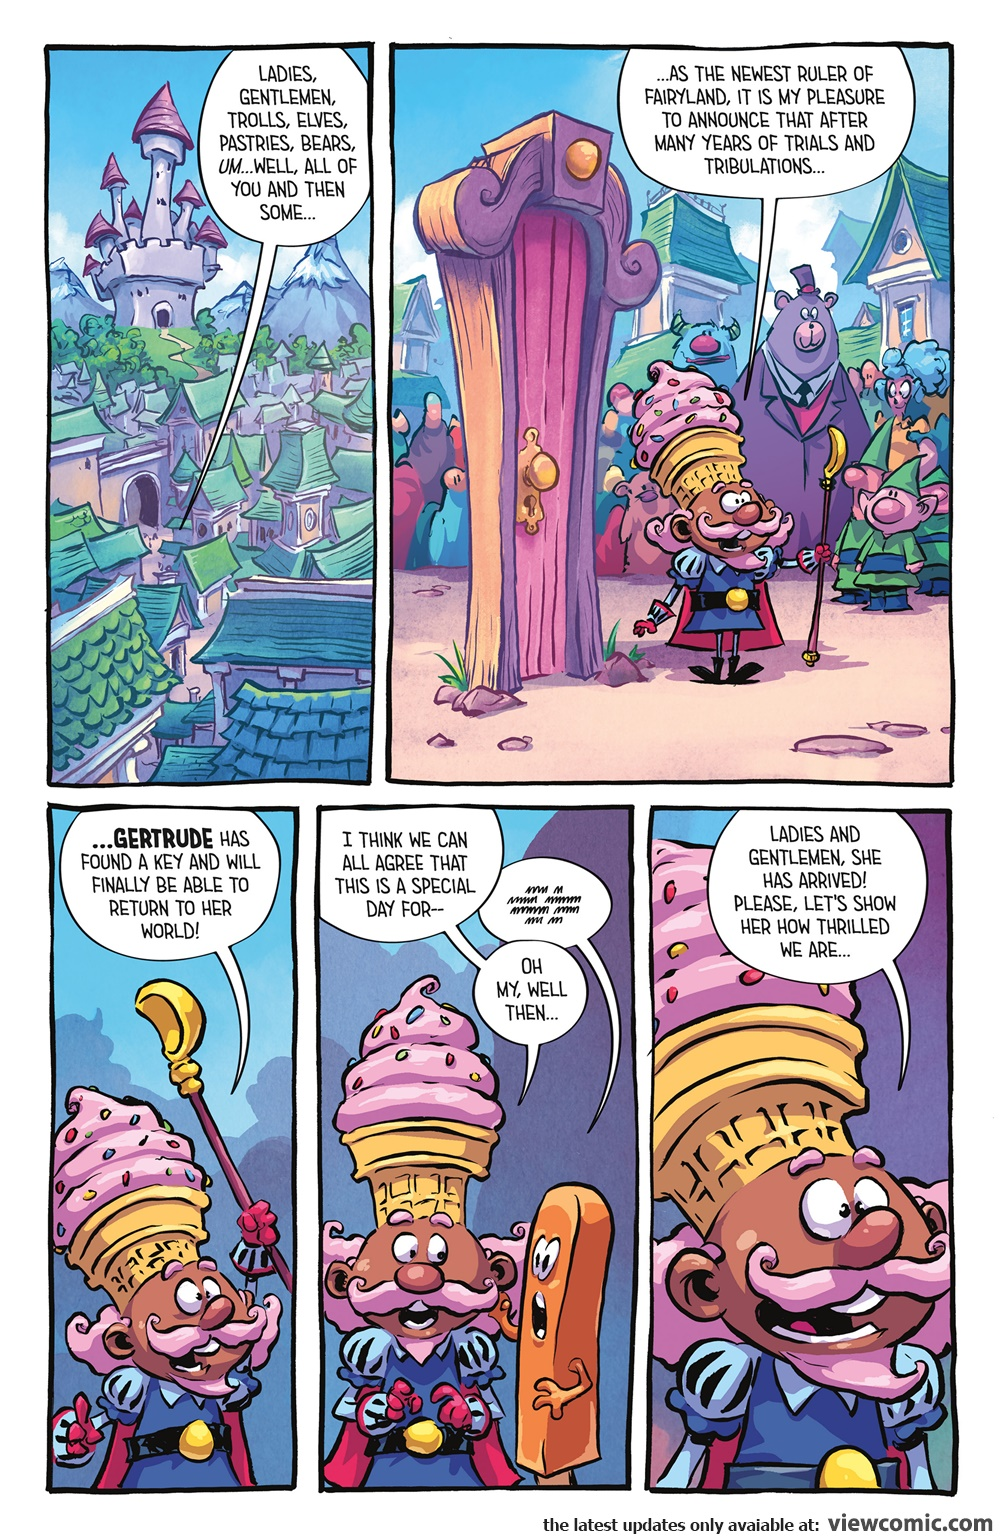 I Hate Fairyland 015 (2017)  | Vietcomic.net reading comics online for free